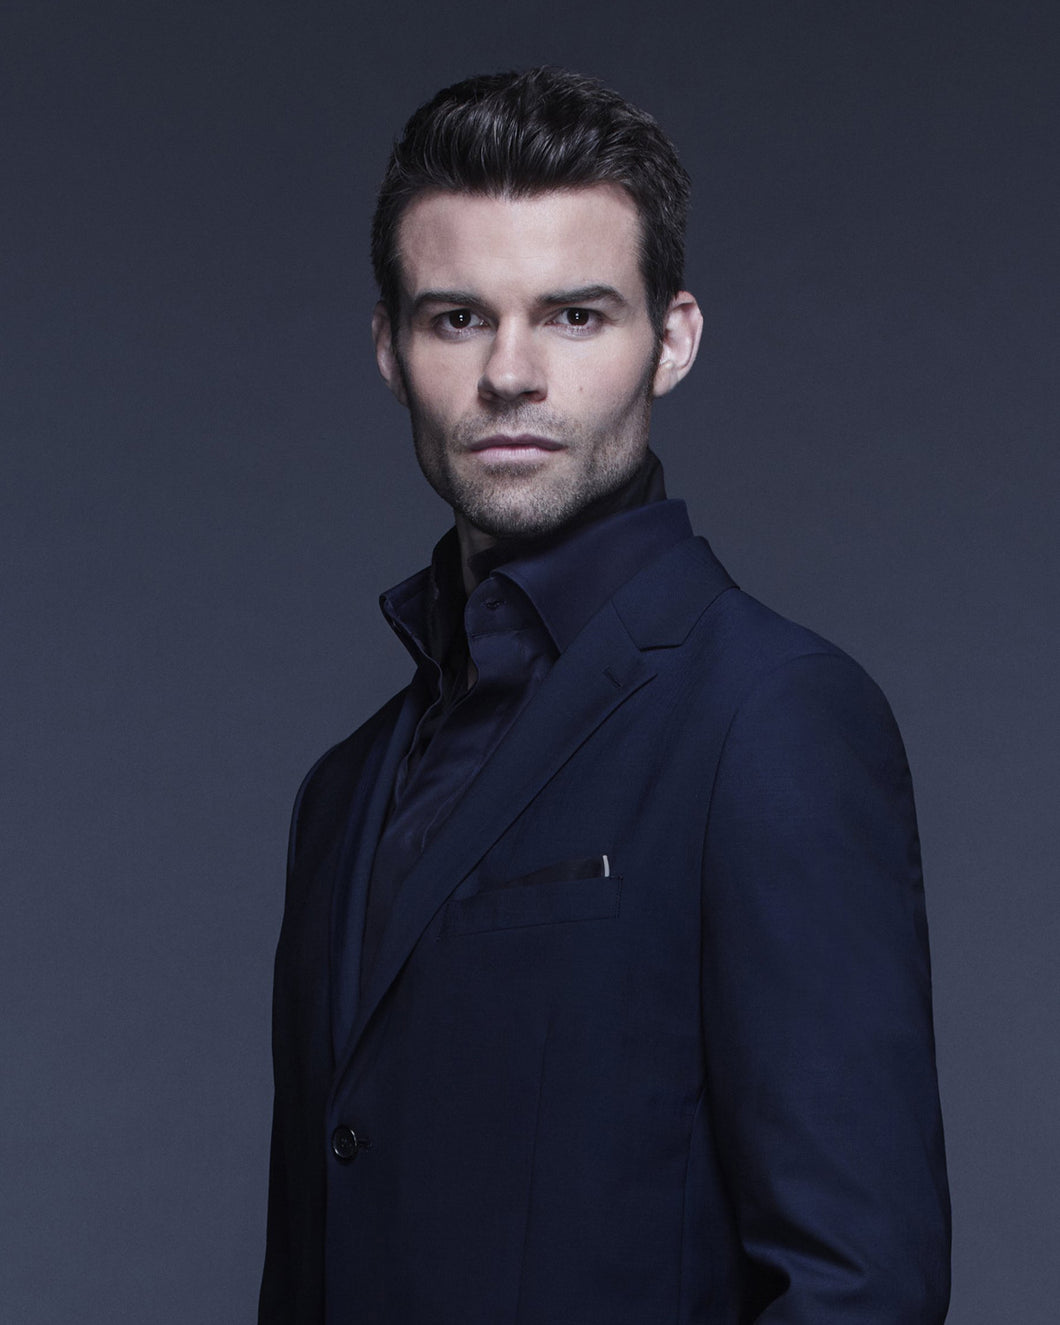 Daniel Gillies Autograph - The Originals